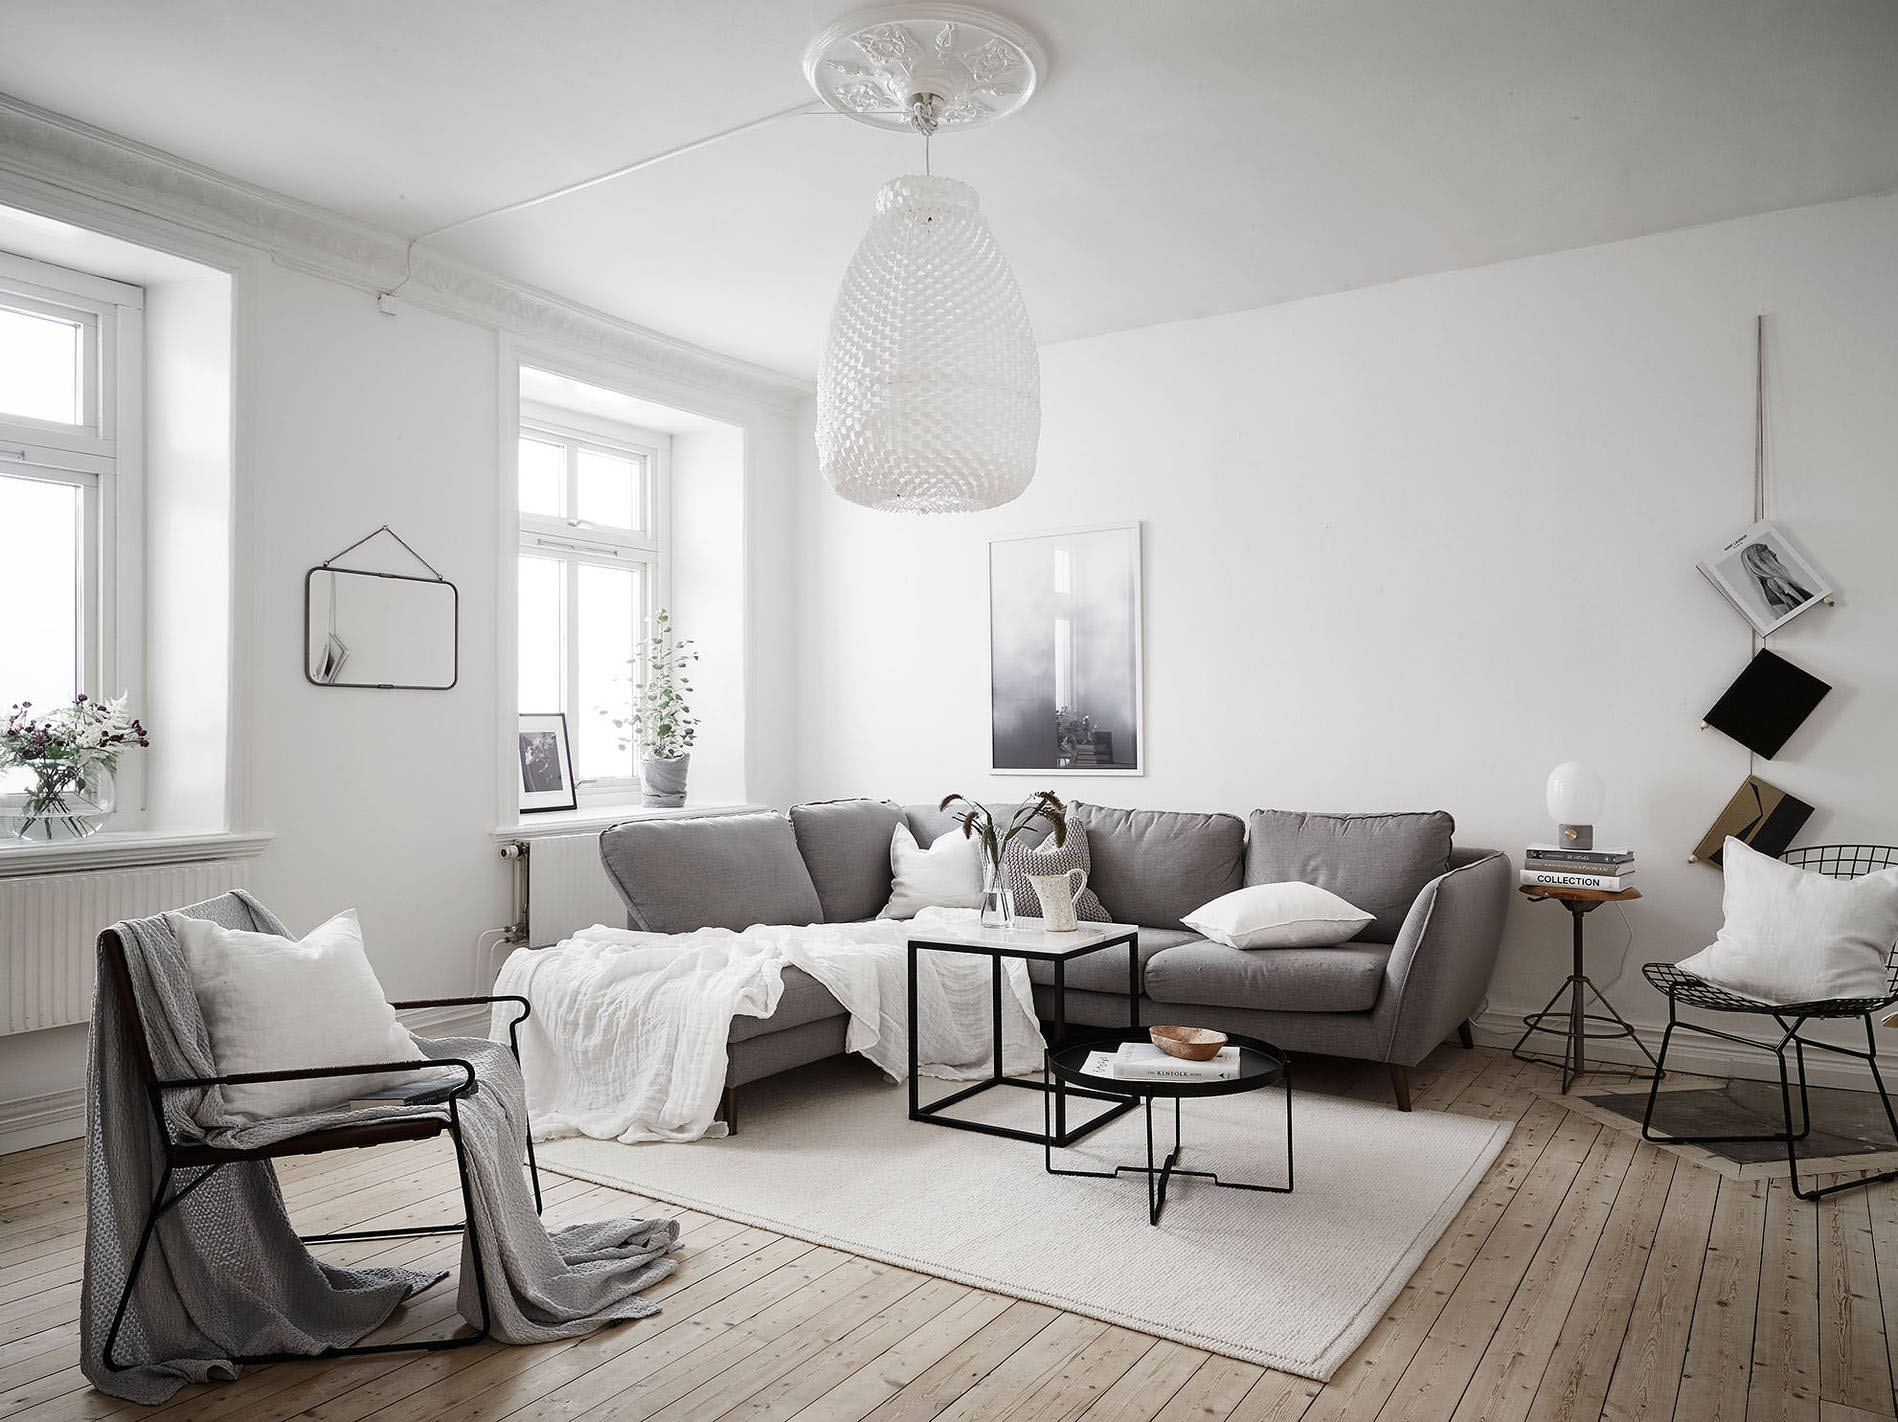 Interior Designs For Homes shining home interior ideas 33 amazing that will make your house awesome bored panda Scandinavian Living Room With Large Pendant Lamp Top 10 Tips For Adding Scandinavian Style To